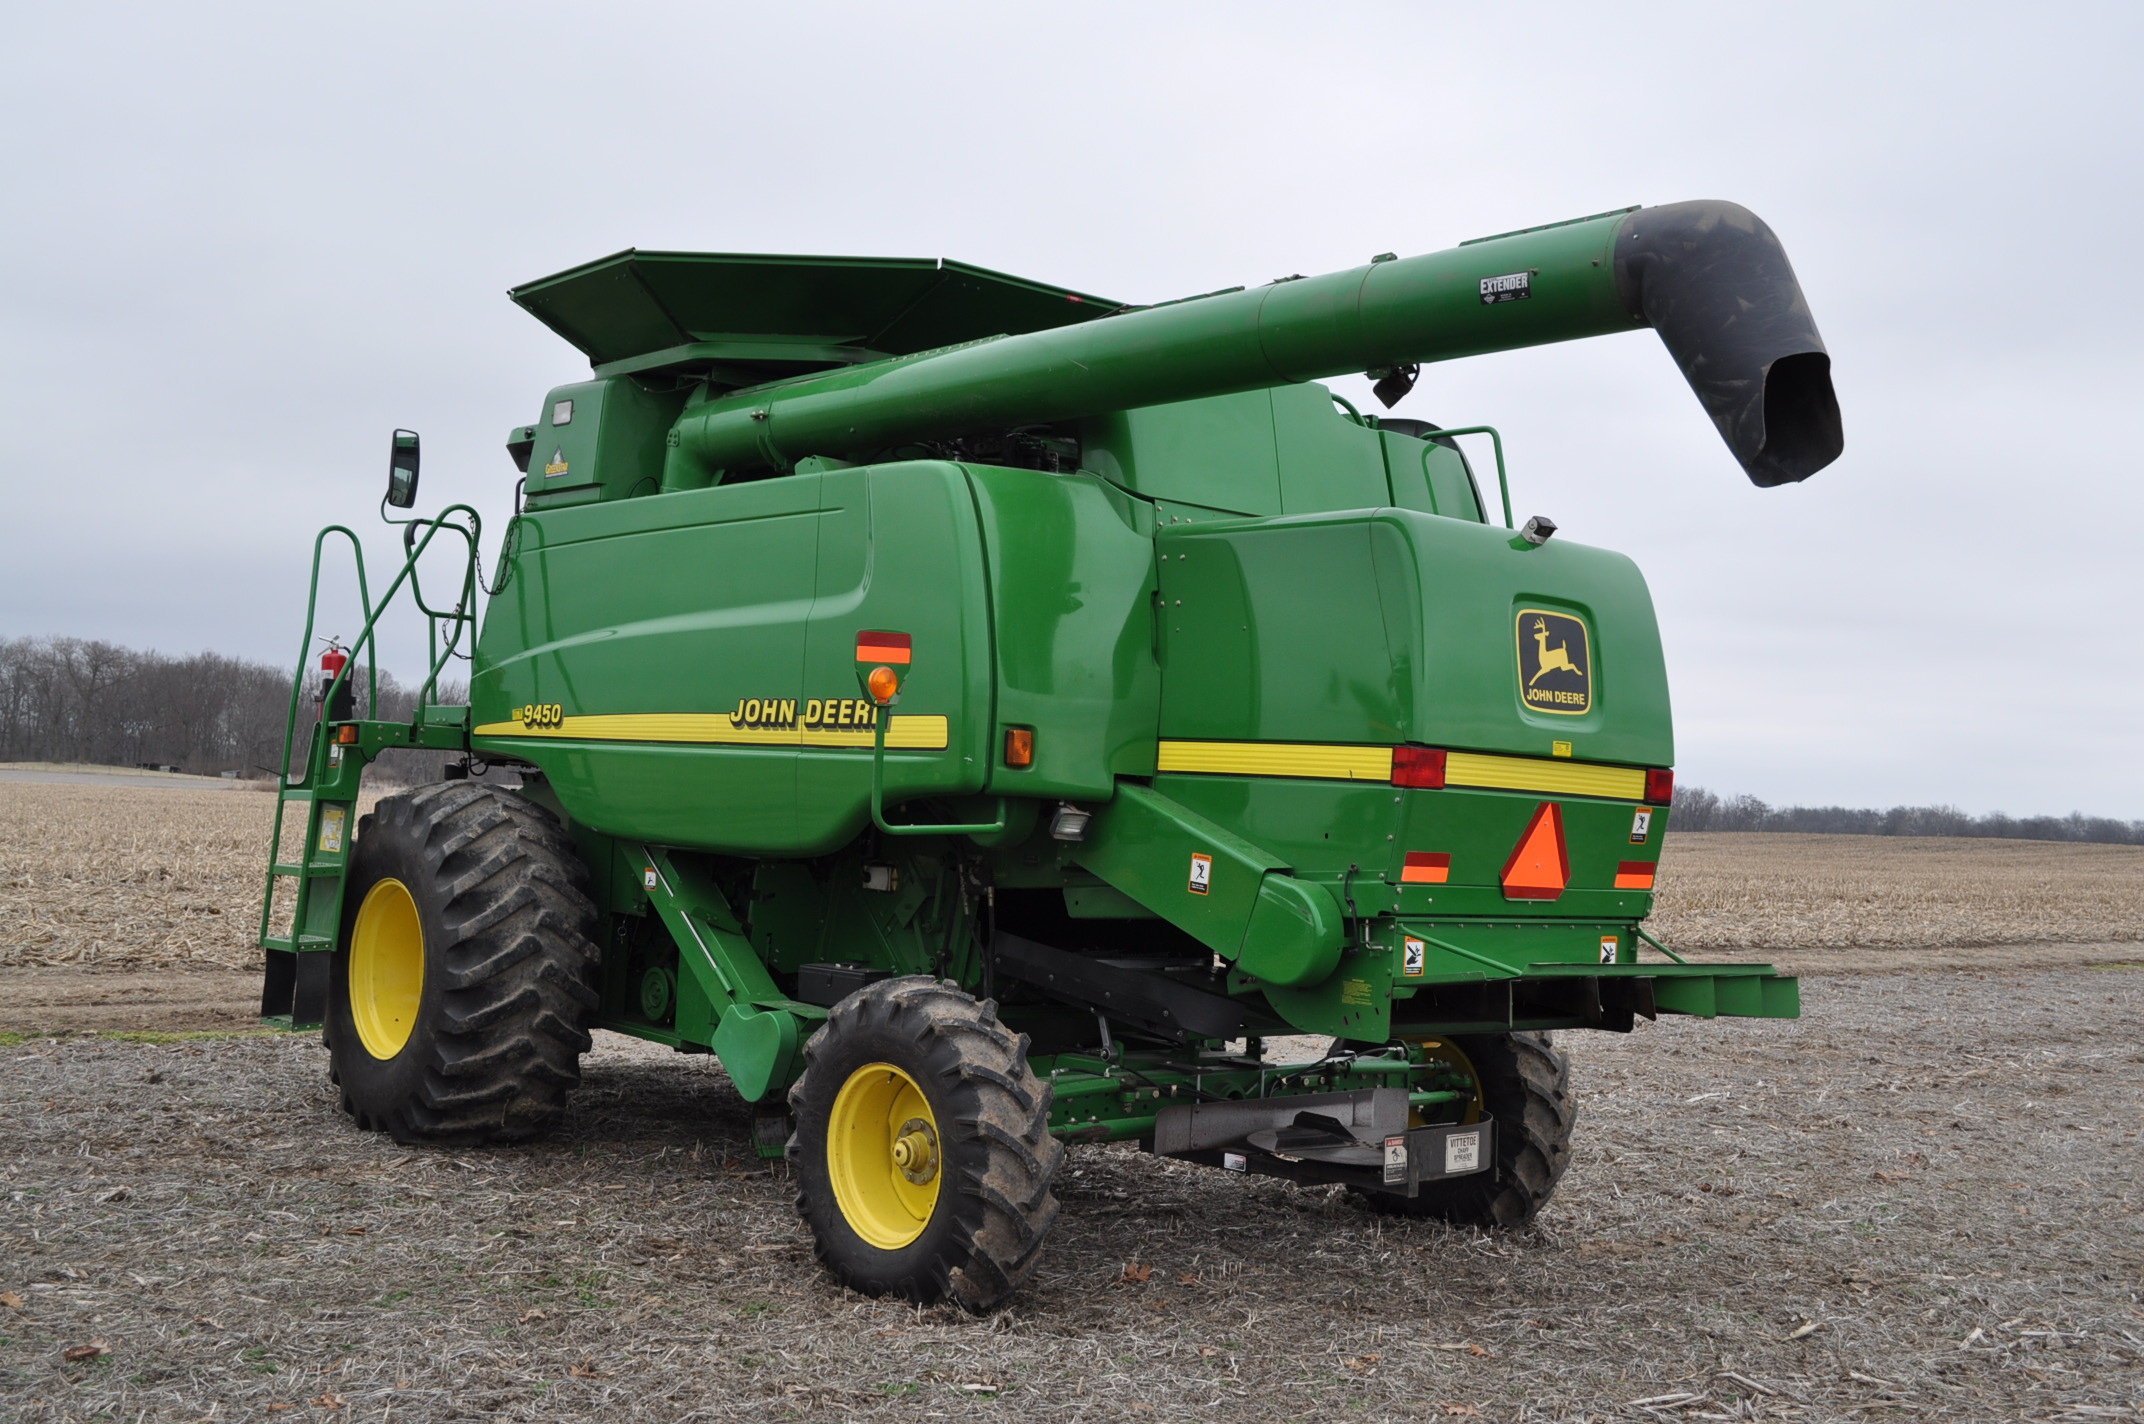 John Deere 9450 combine, 30.5-L32 drive, NEW 14.9-24 rear, chopper, chaff spreader, Mauer bin - Image 2 of 24